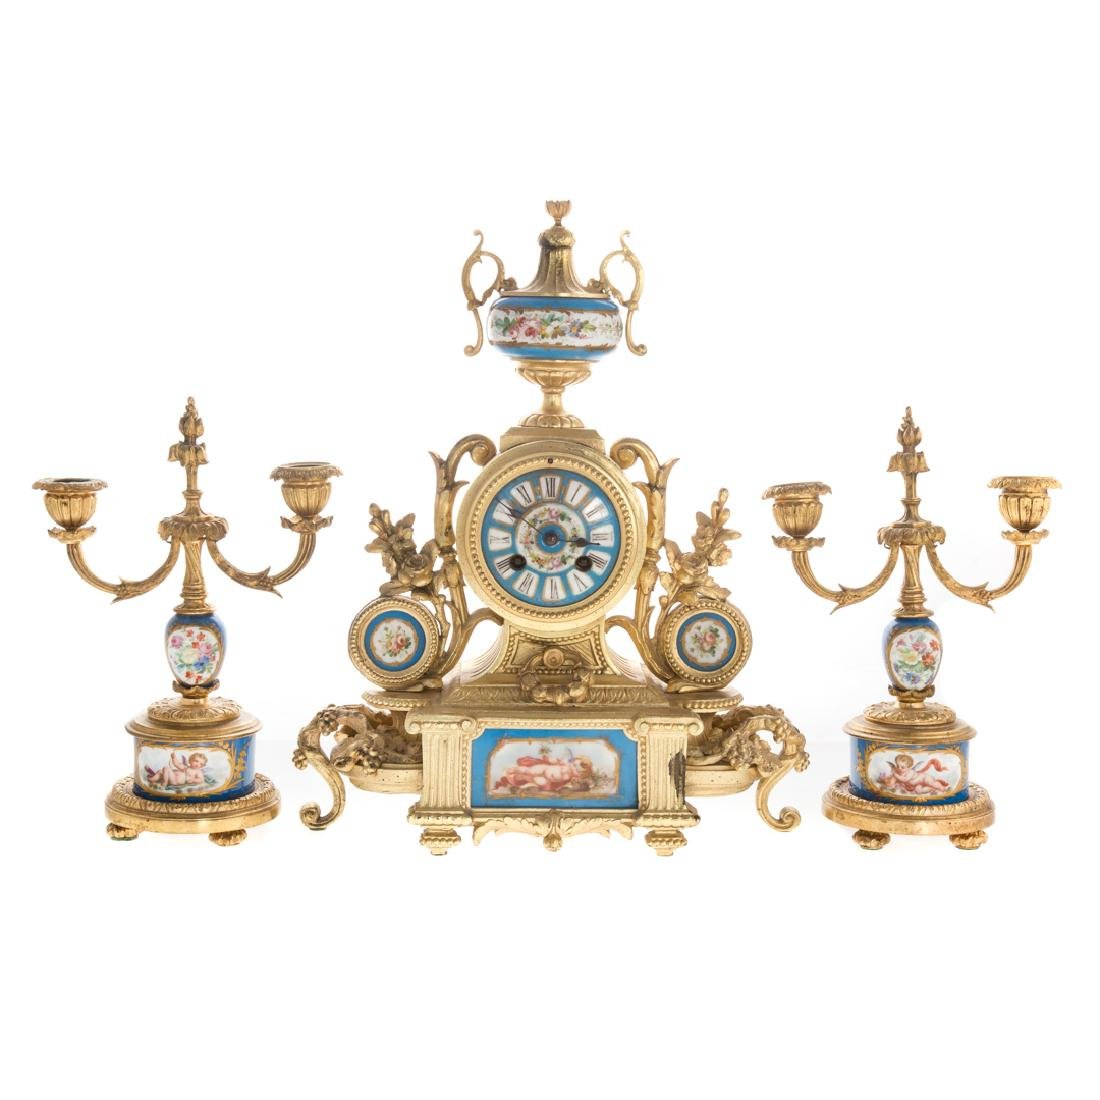 Louis XVI style clock garniture